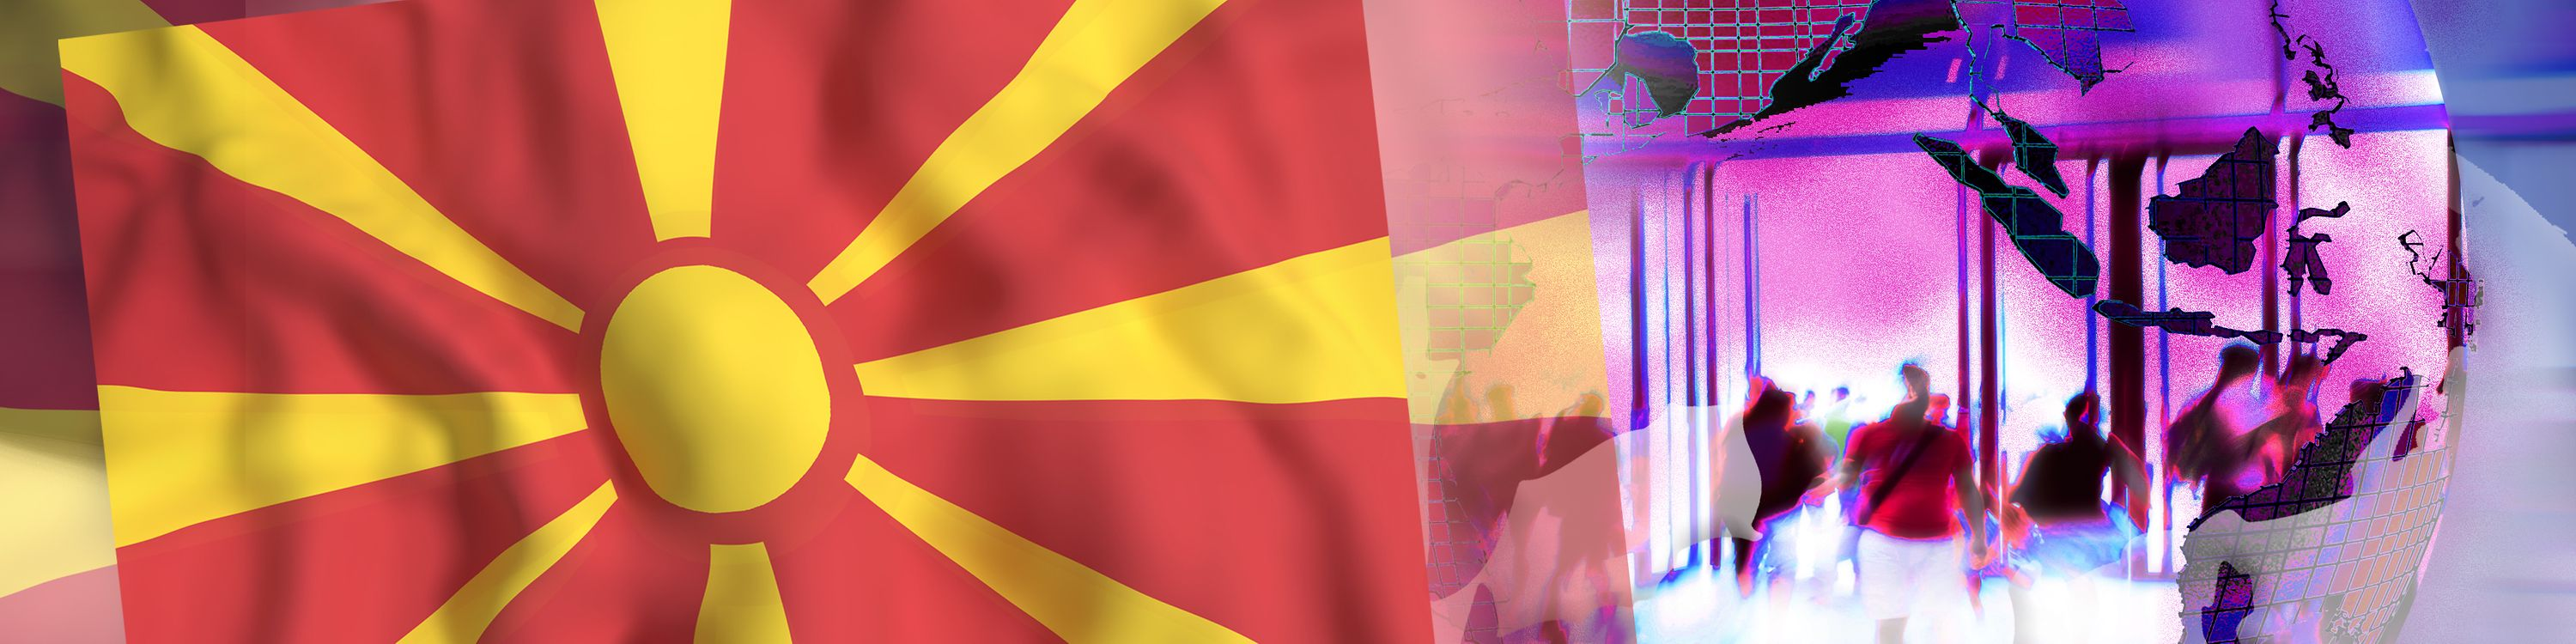 Illustration for NatCo in Macedonia with country flag.